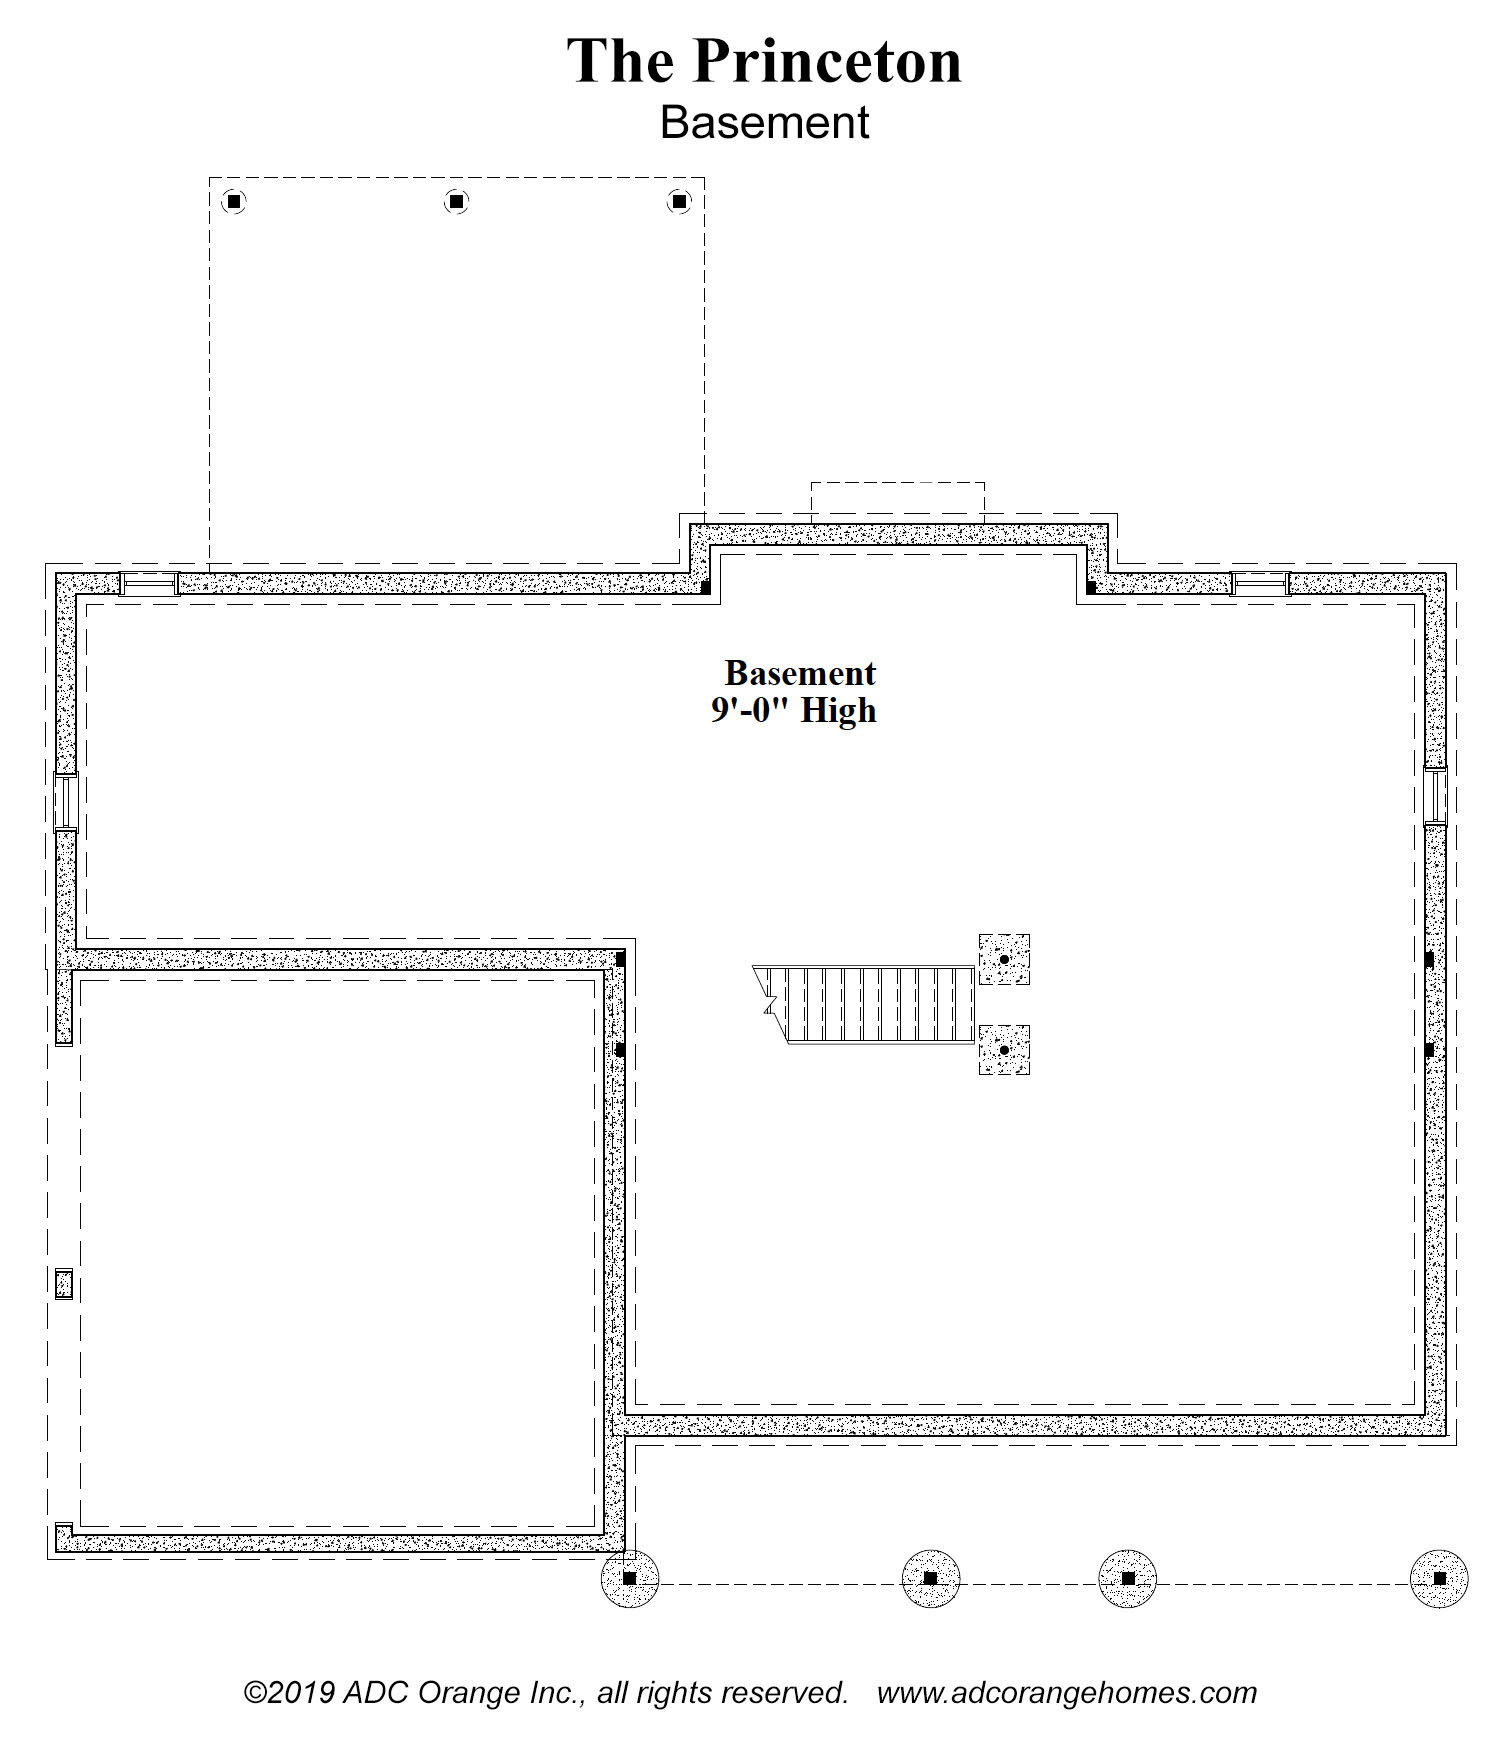 Basement floor plan - move in ready home - Orange County, New York